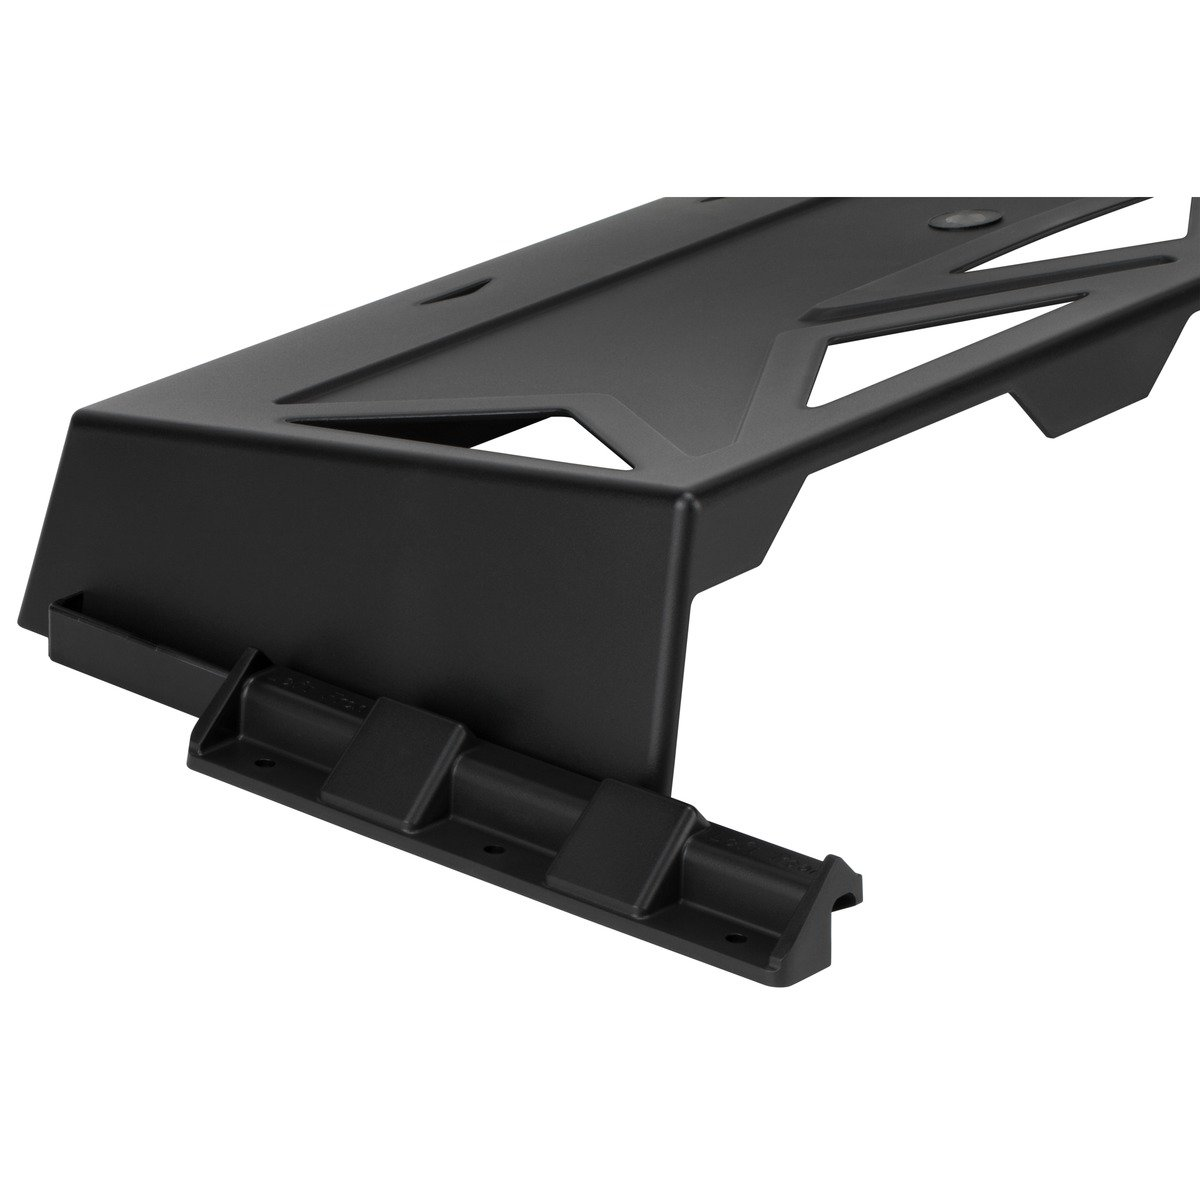 Targus Under-Desk Sliding Dock Tray with Mounting Brackets and Cutouts for Cable Management (ACX001USZ) by Targus (Image #5)